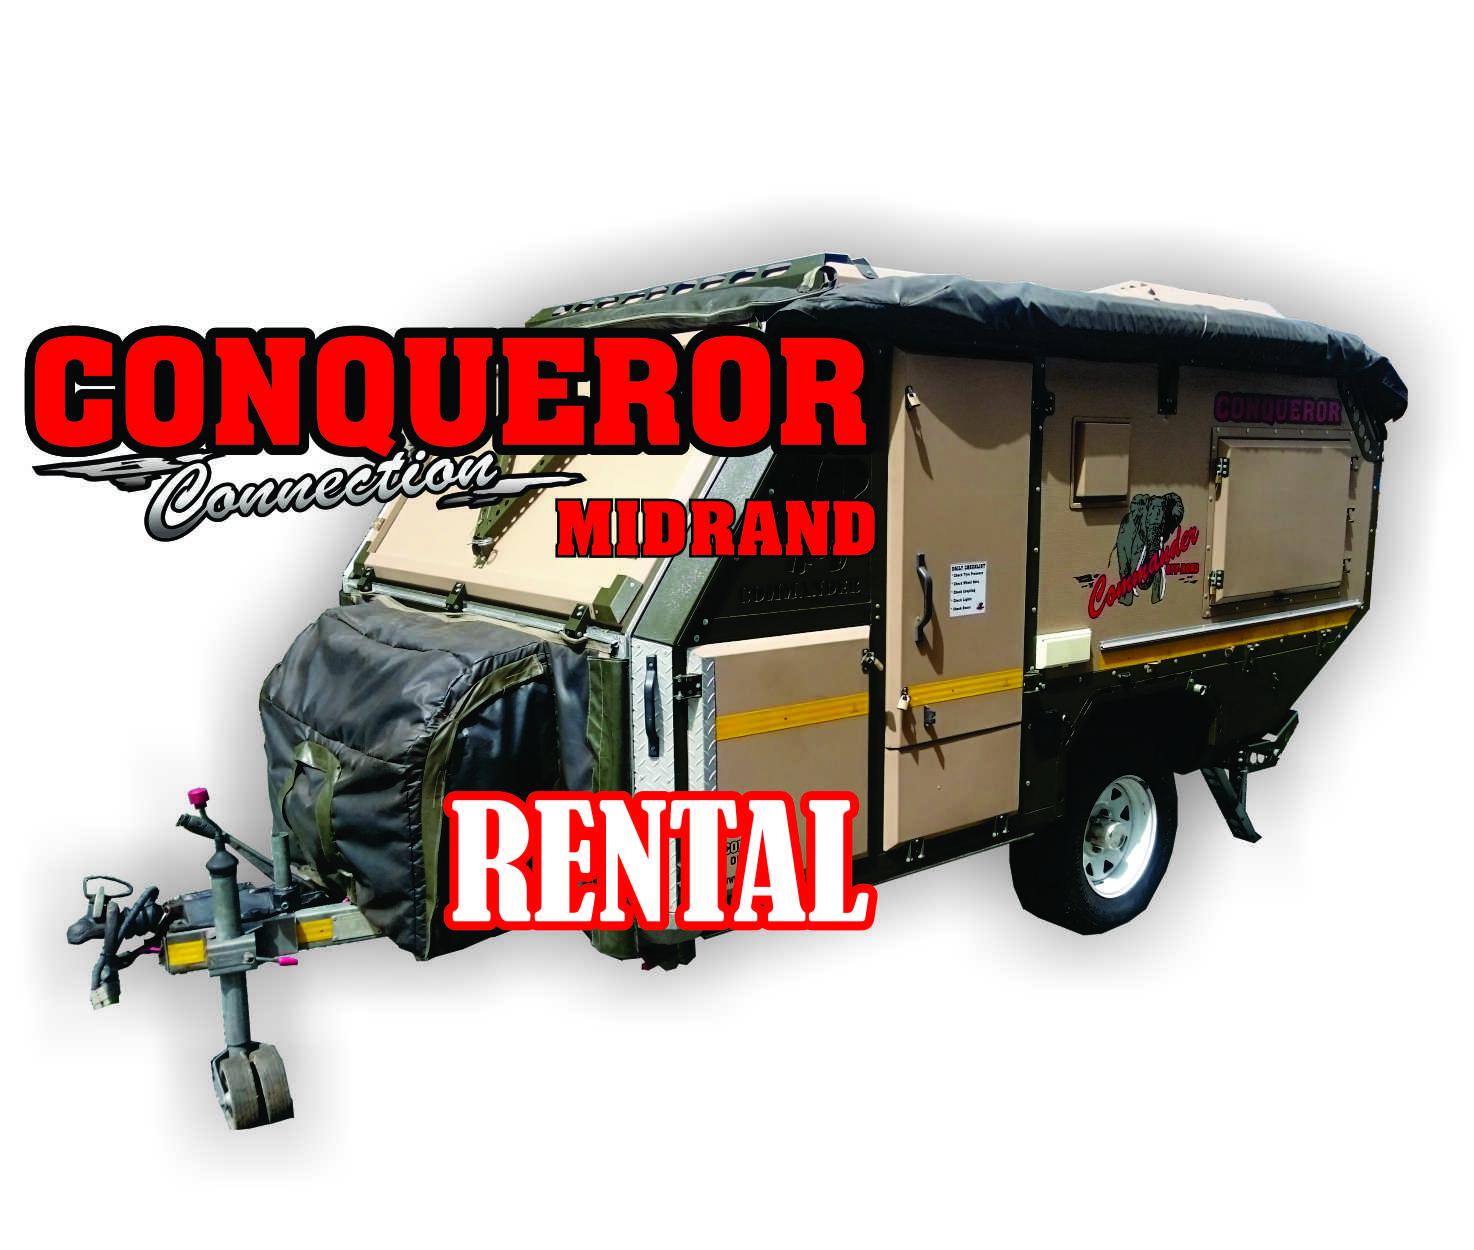 Conqueror Commander Rental